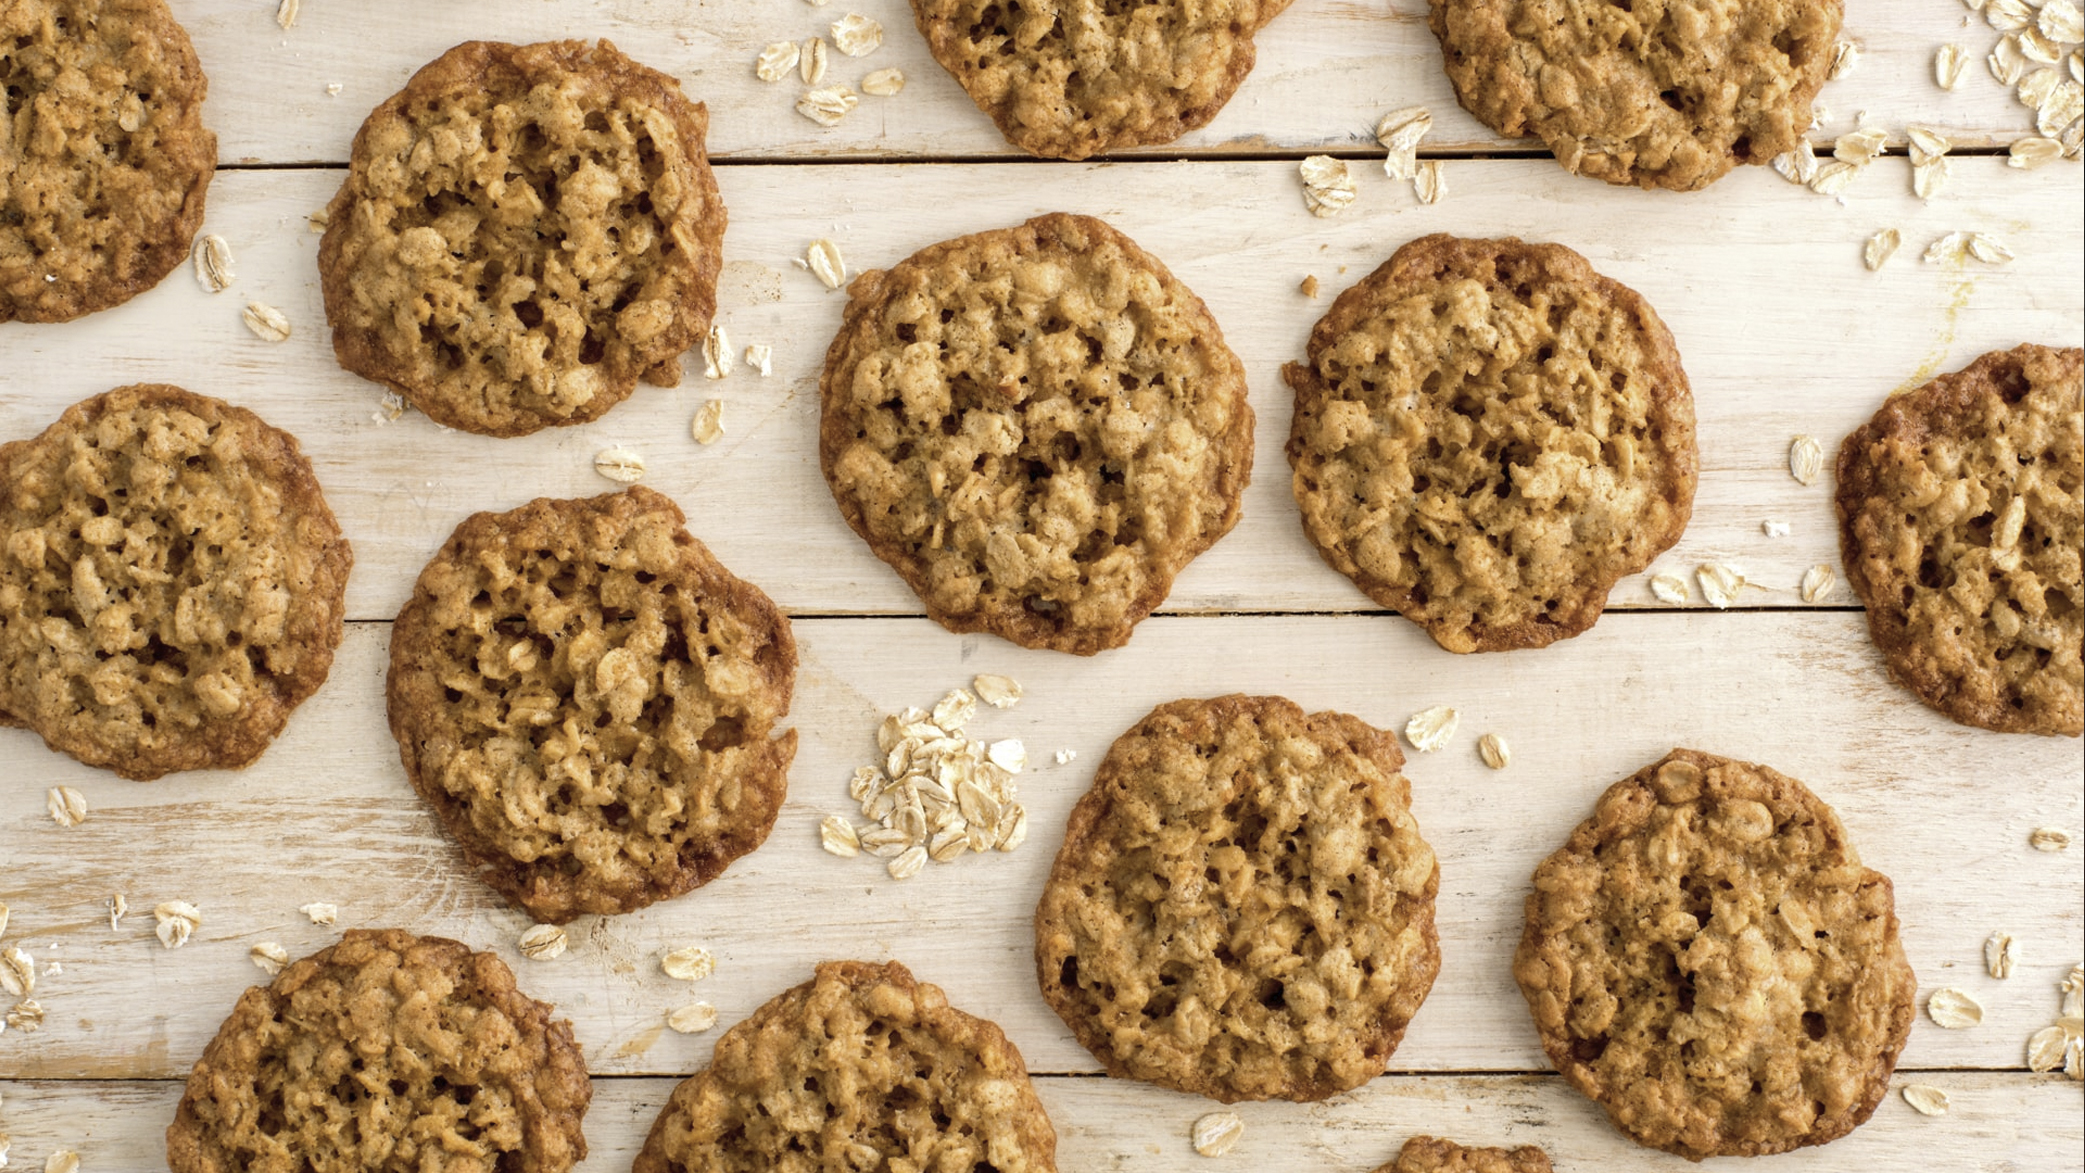 Super easy oatmeal cookie to get your macros in